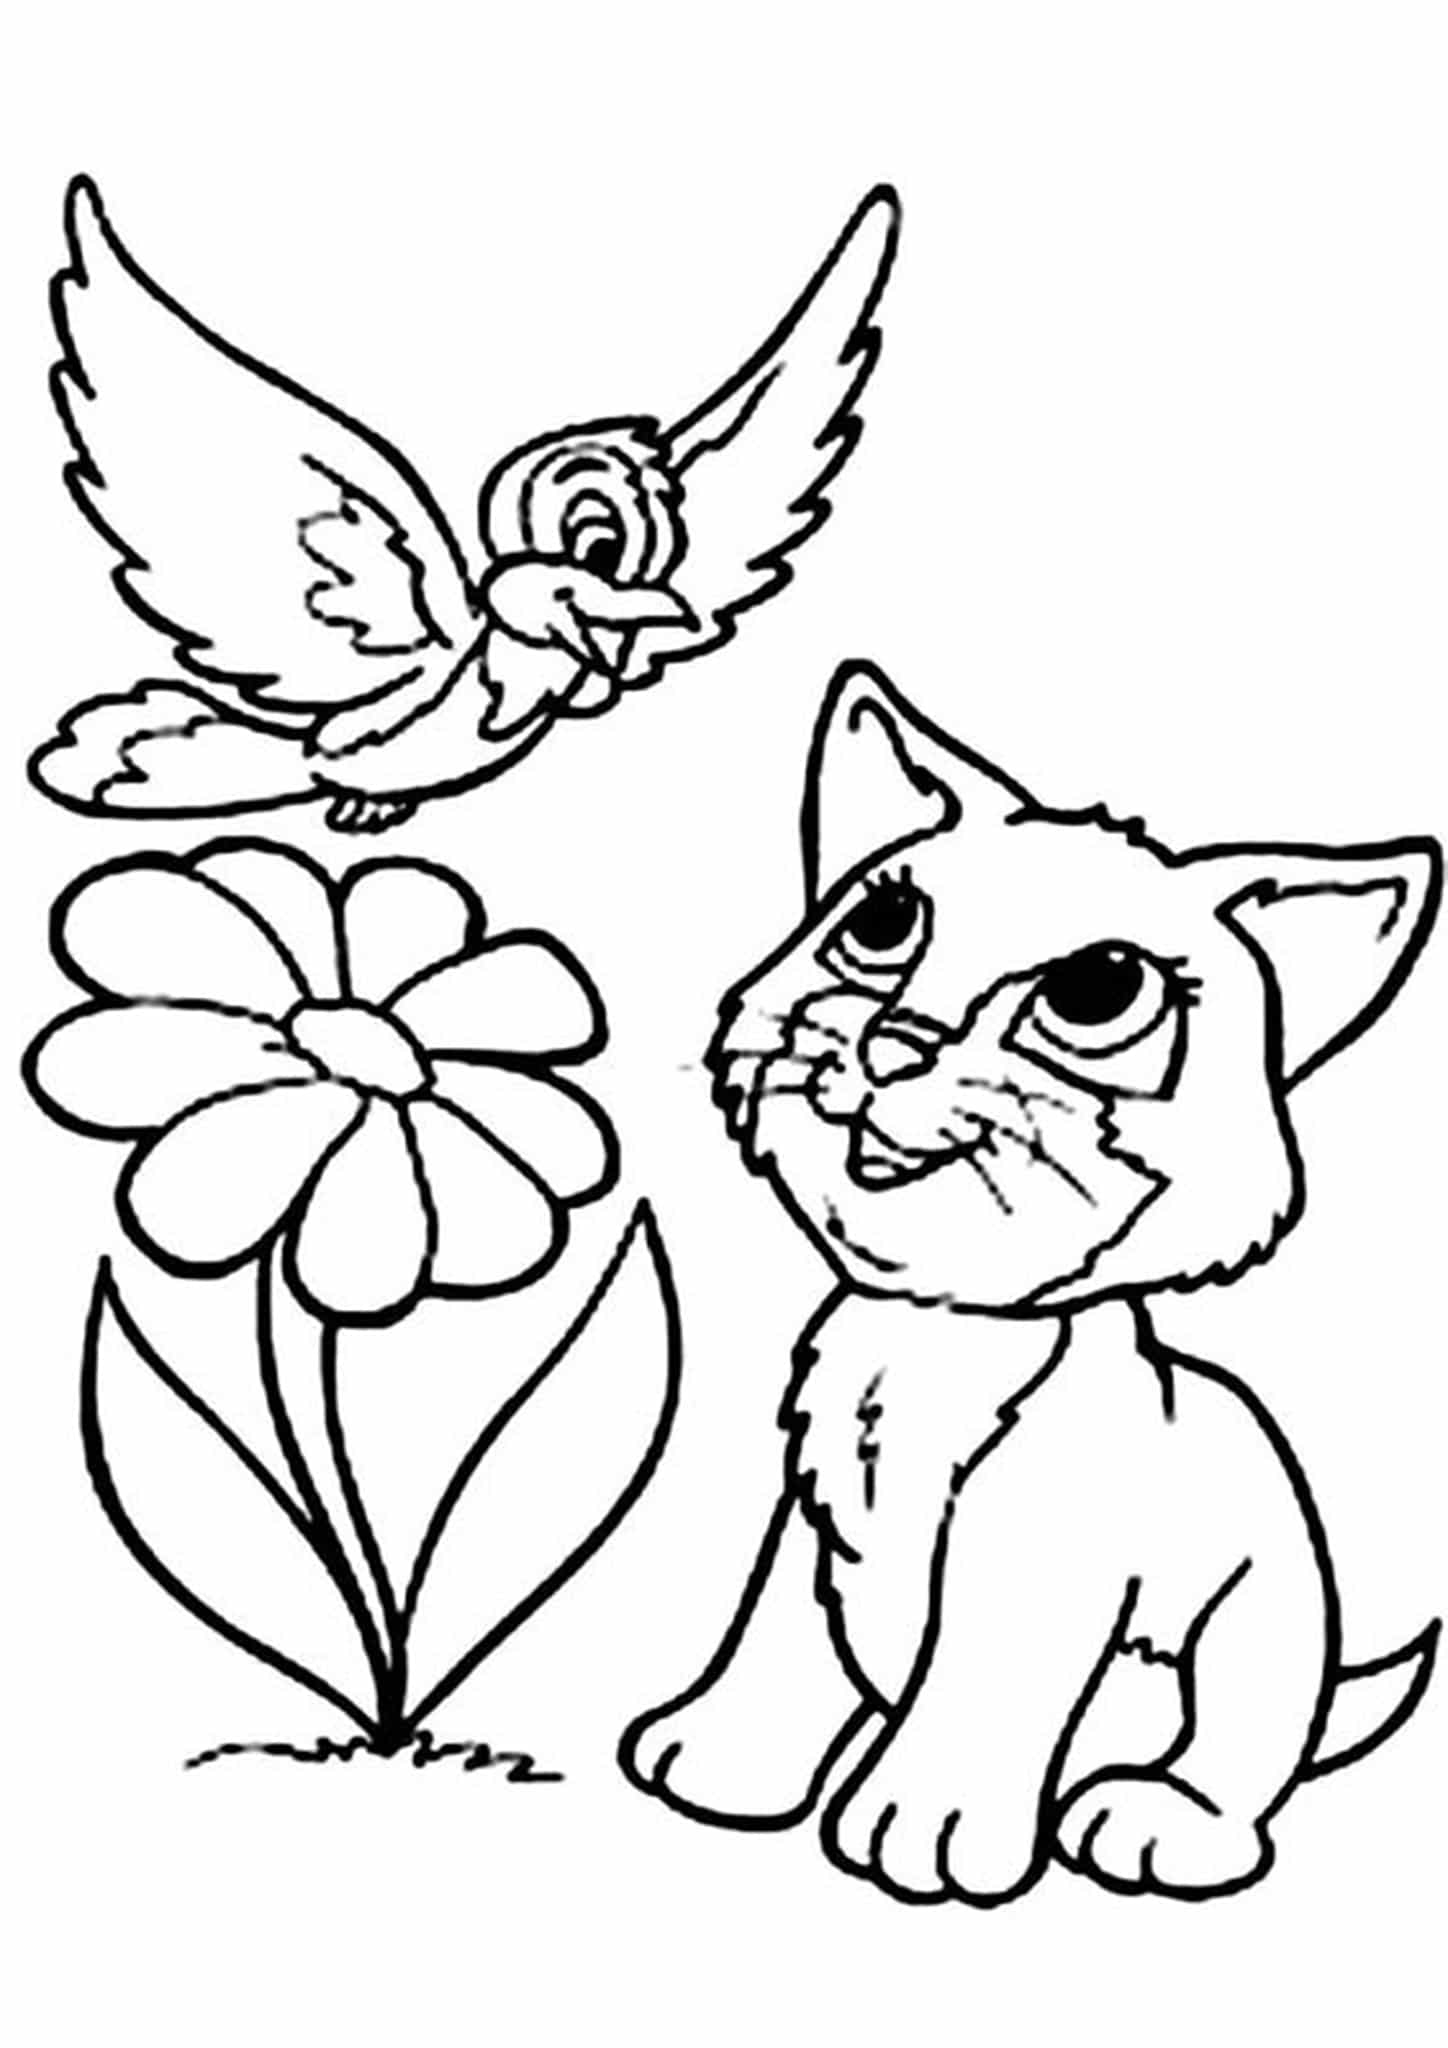 kitten color pages free kitten coloring pages for adults printable to color pages kitten